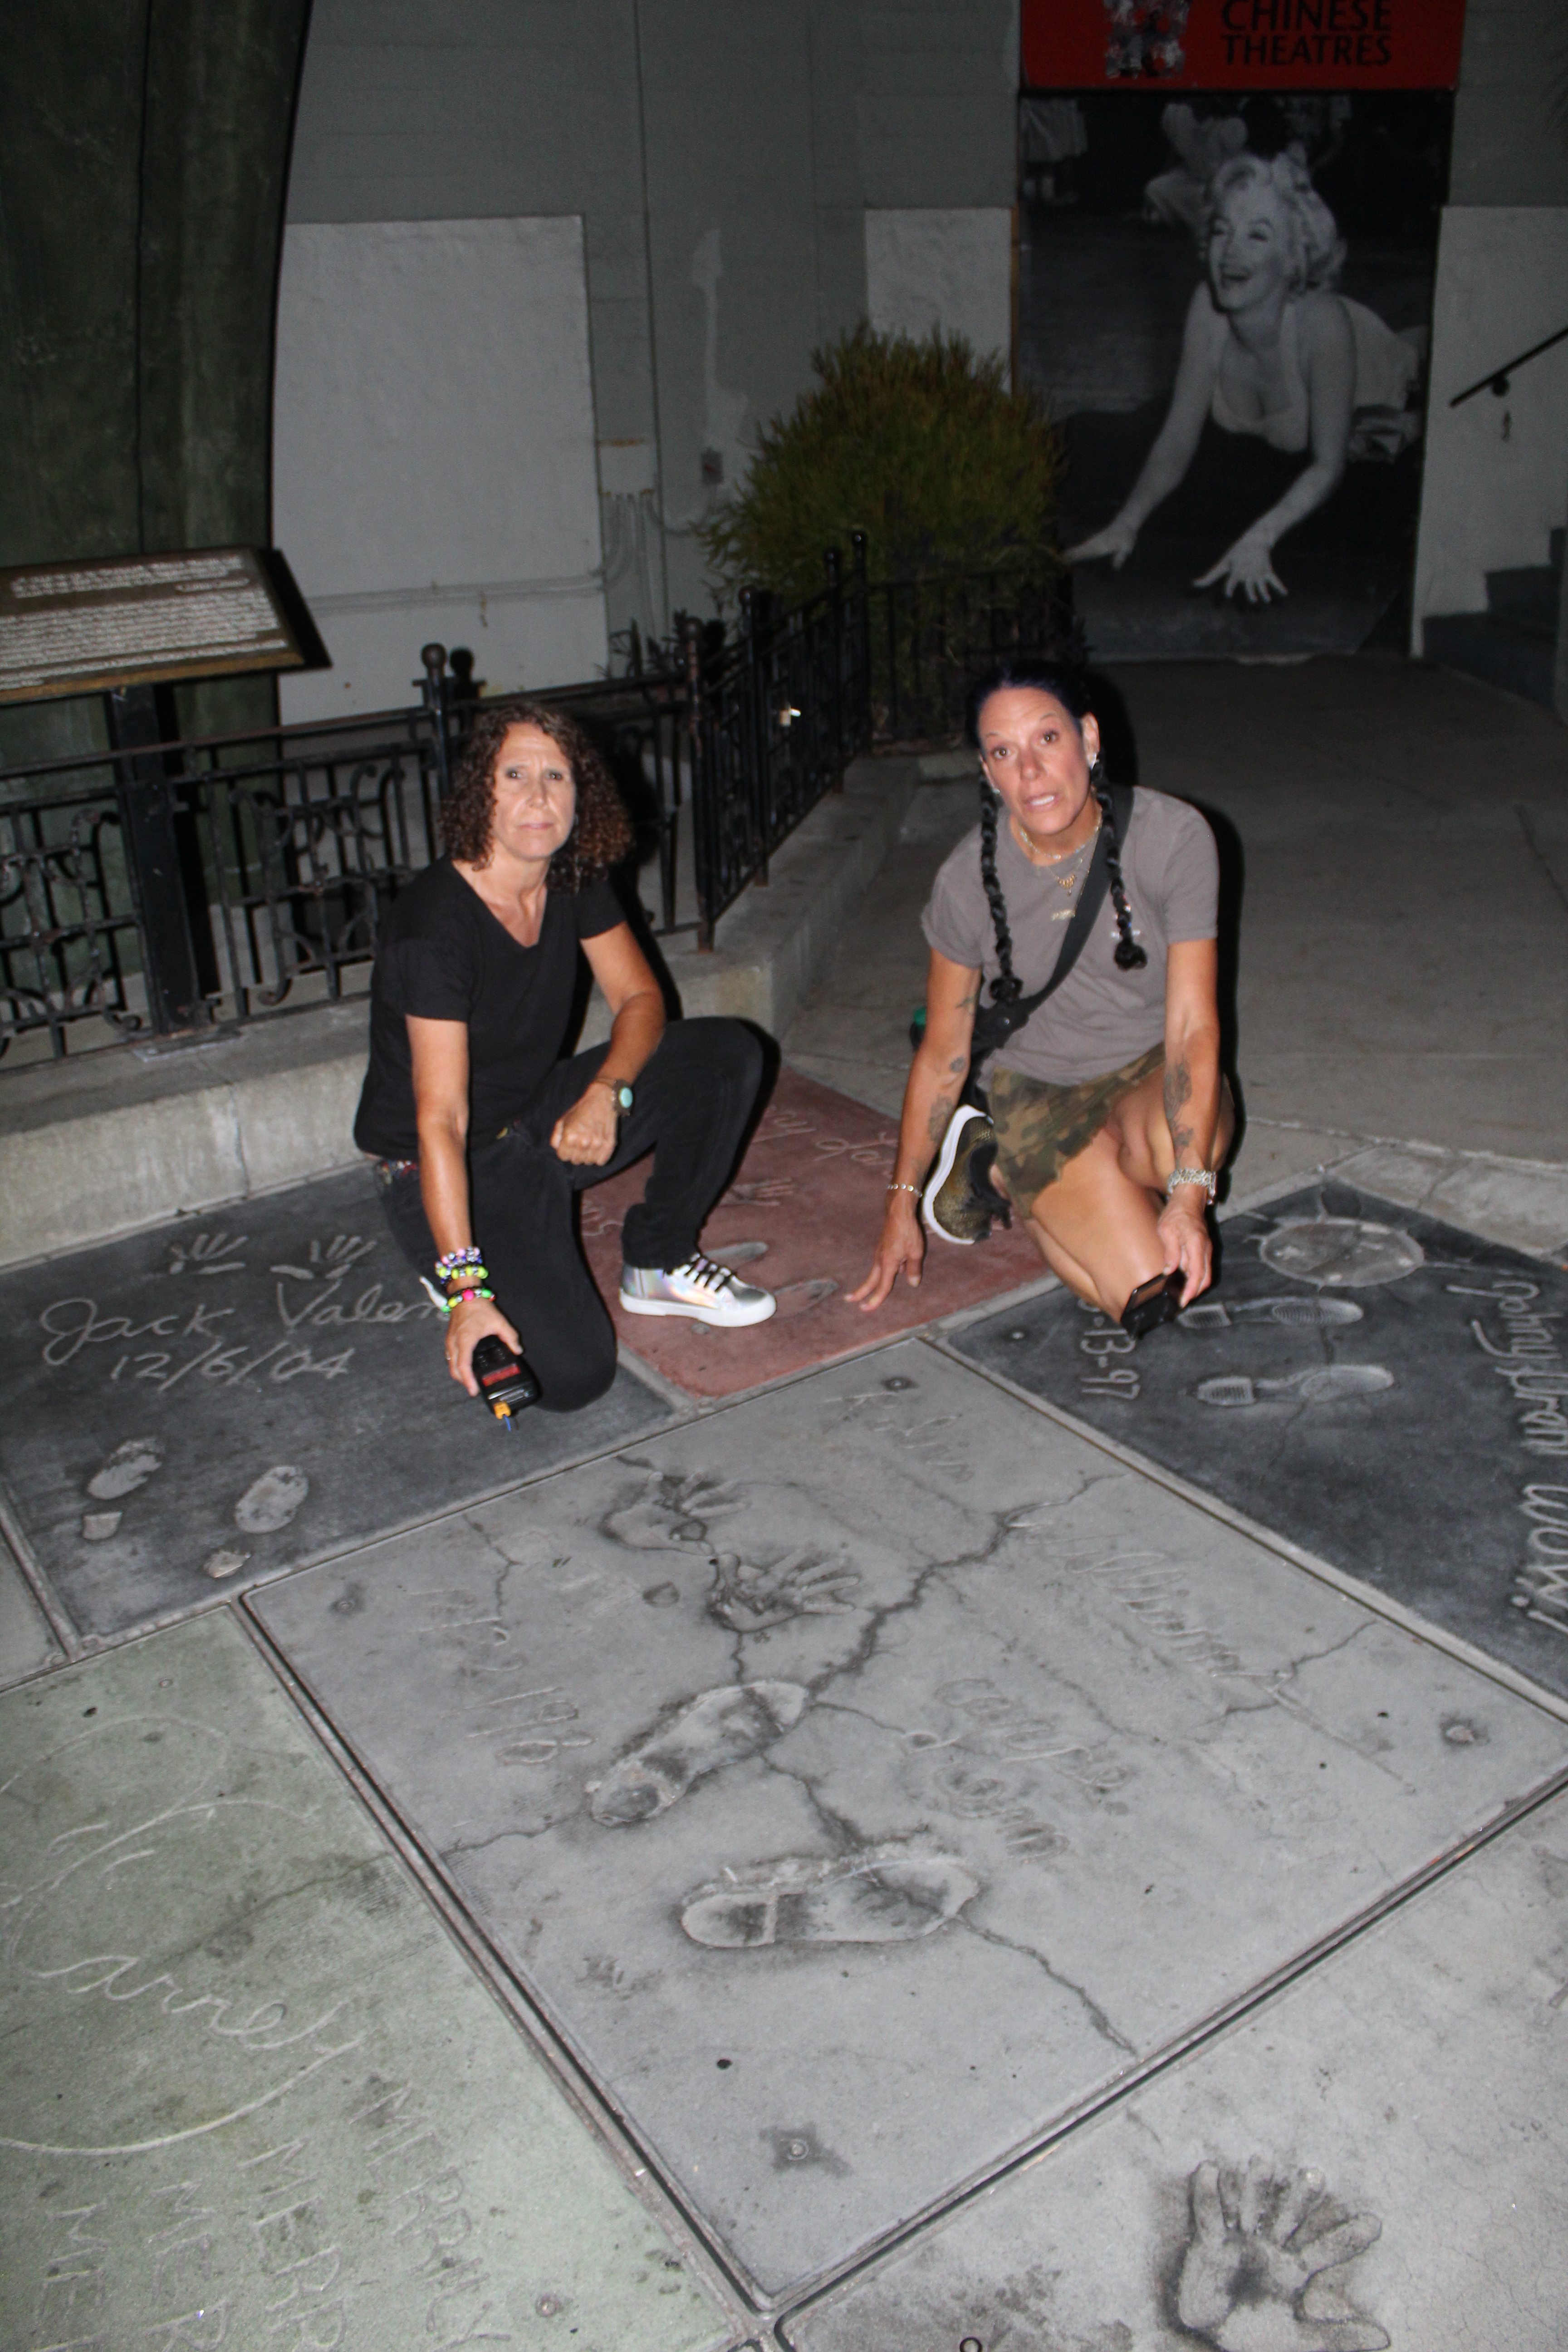 Linda at Grauman's Theater handprint